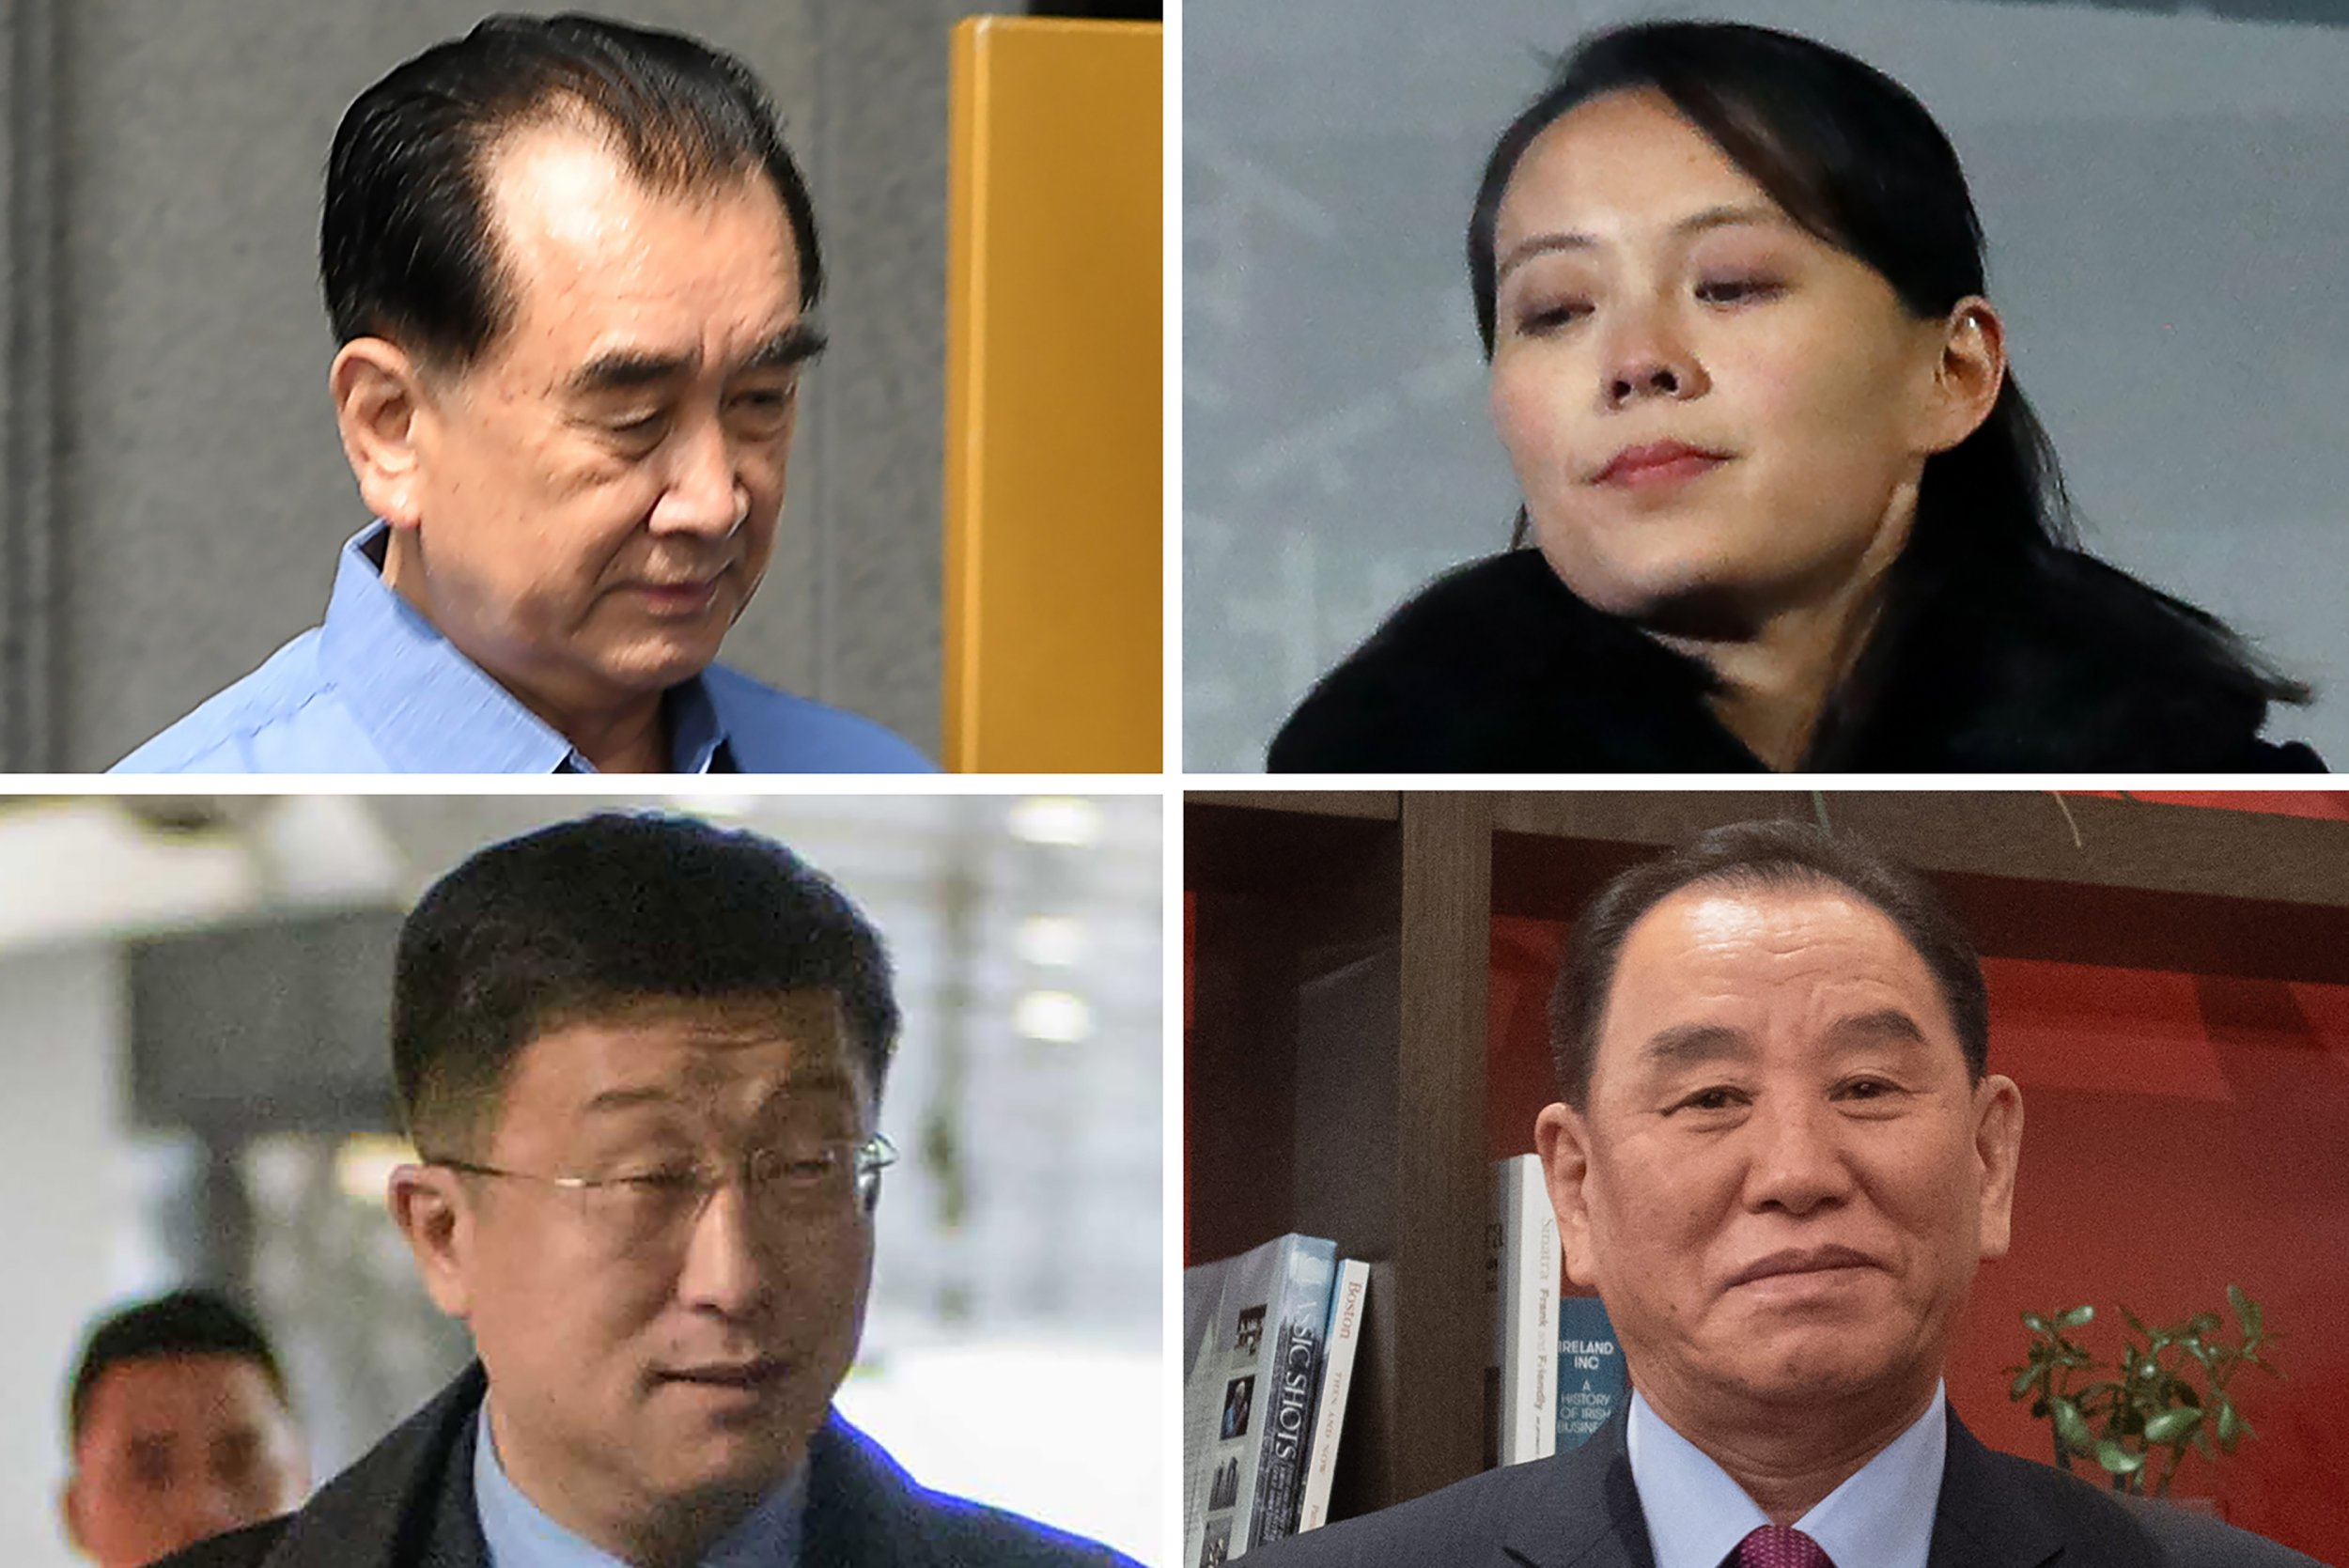 North Korea S Top Men And Women Meet Kim Jong Un S Sister And Other Aides At Donald Trump Summit In Vietnam